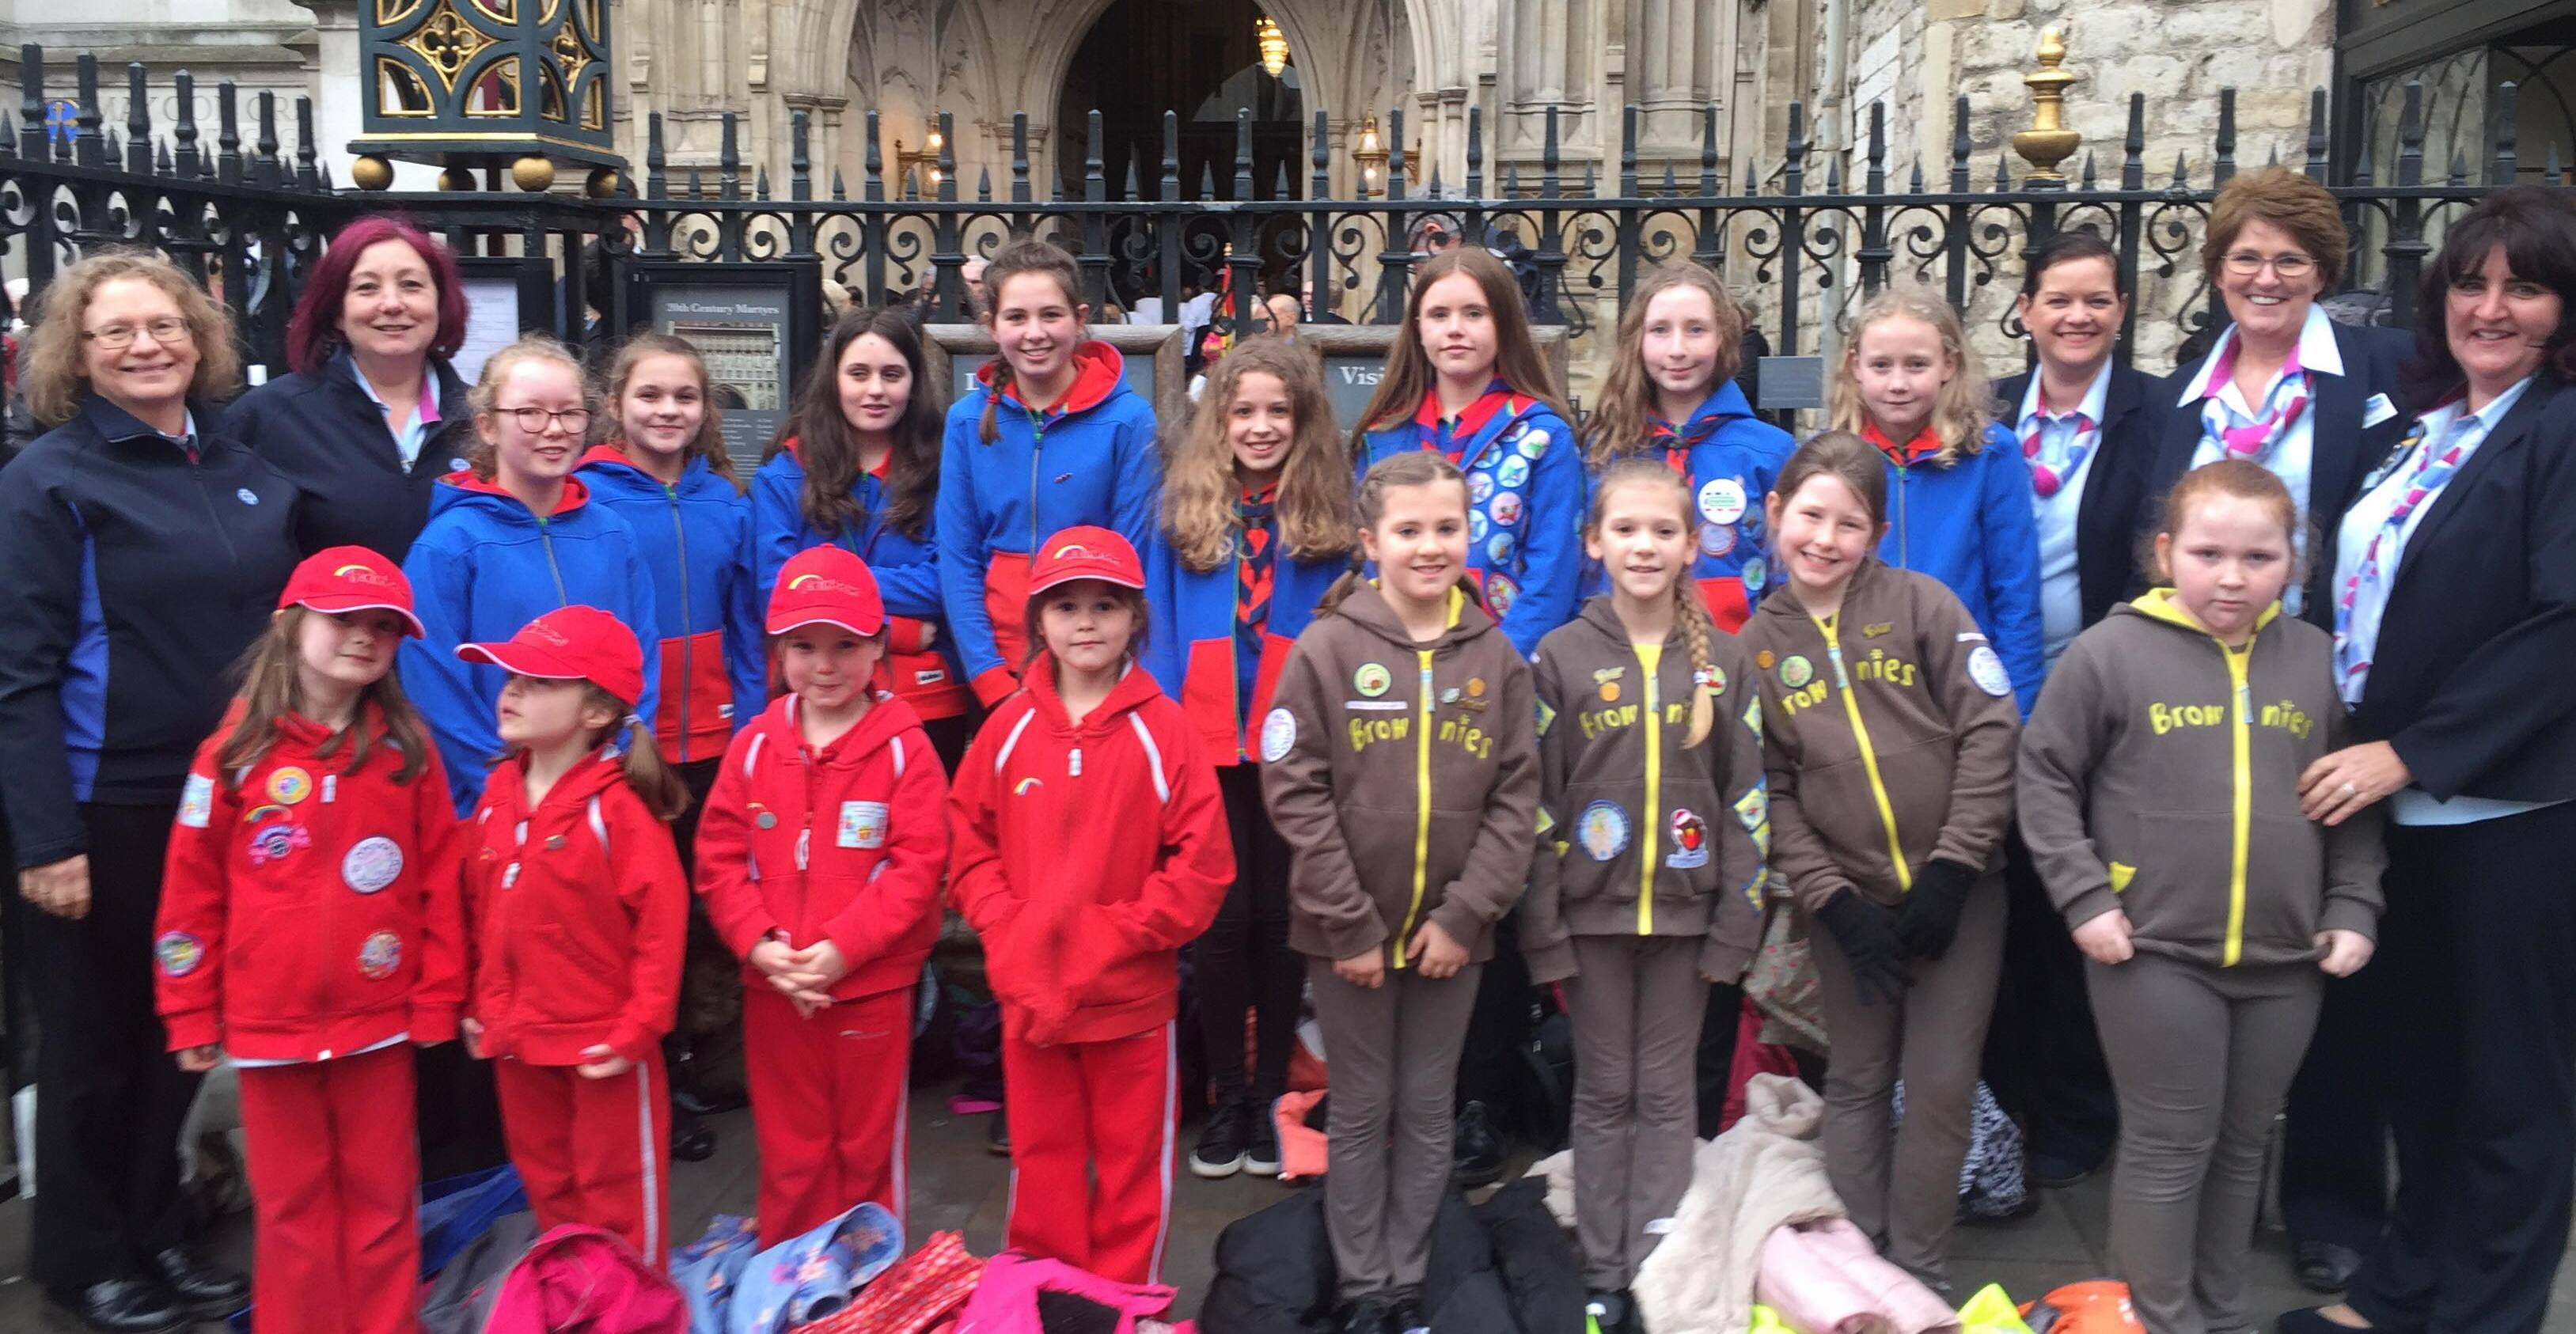 Guiding members celebrate Commonwealth Day at Westminster Abbey